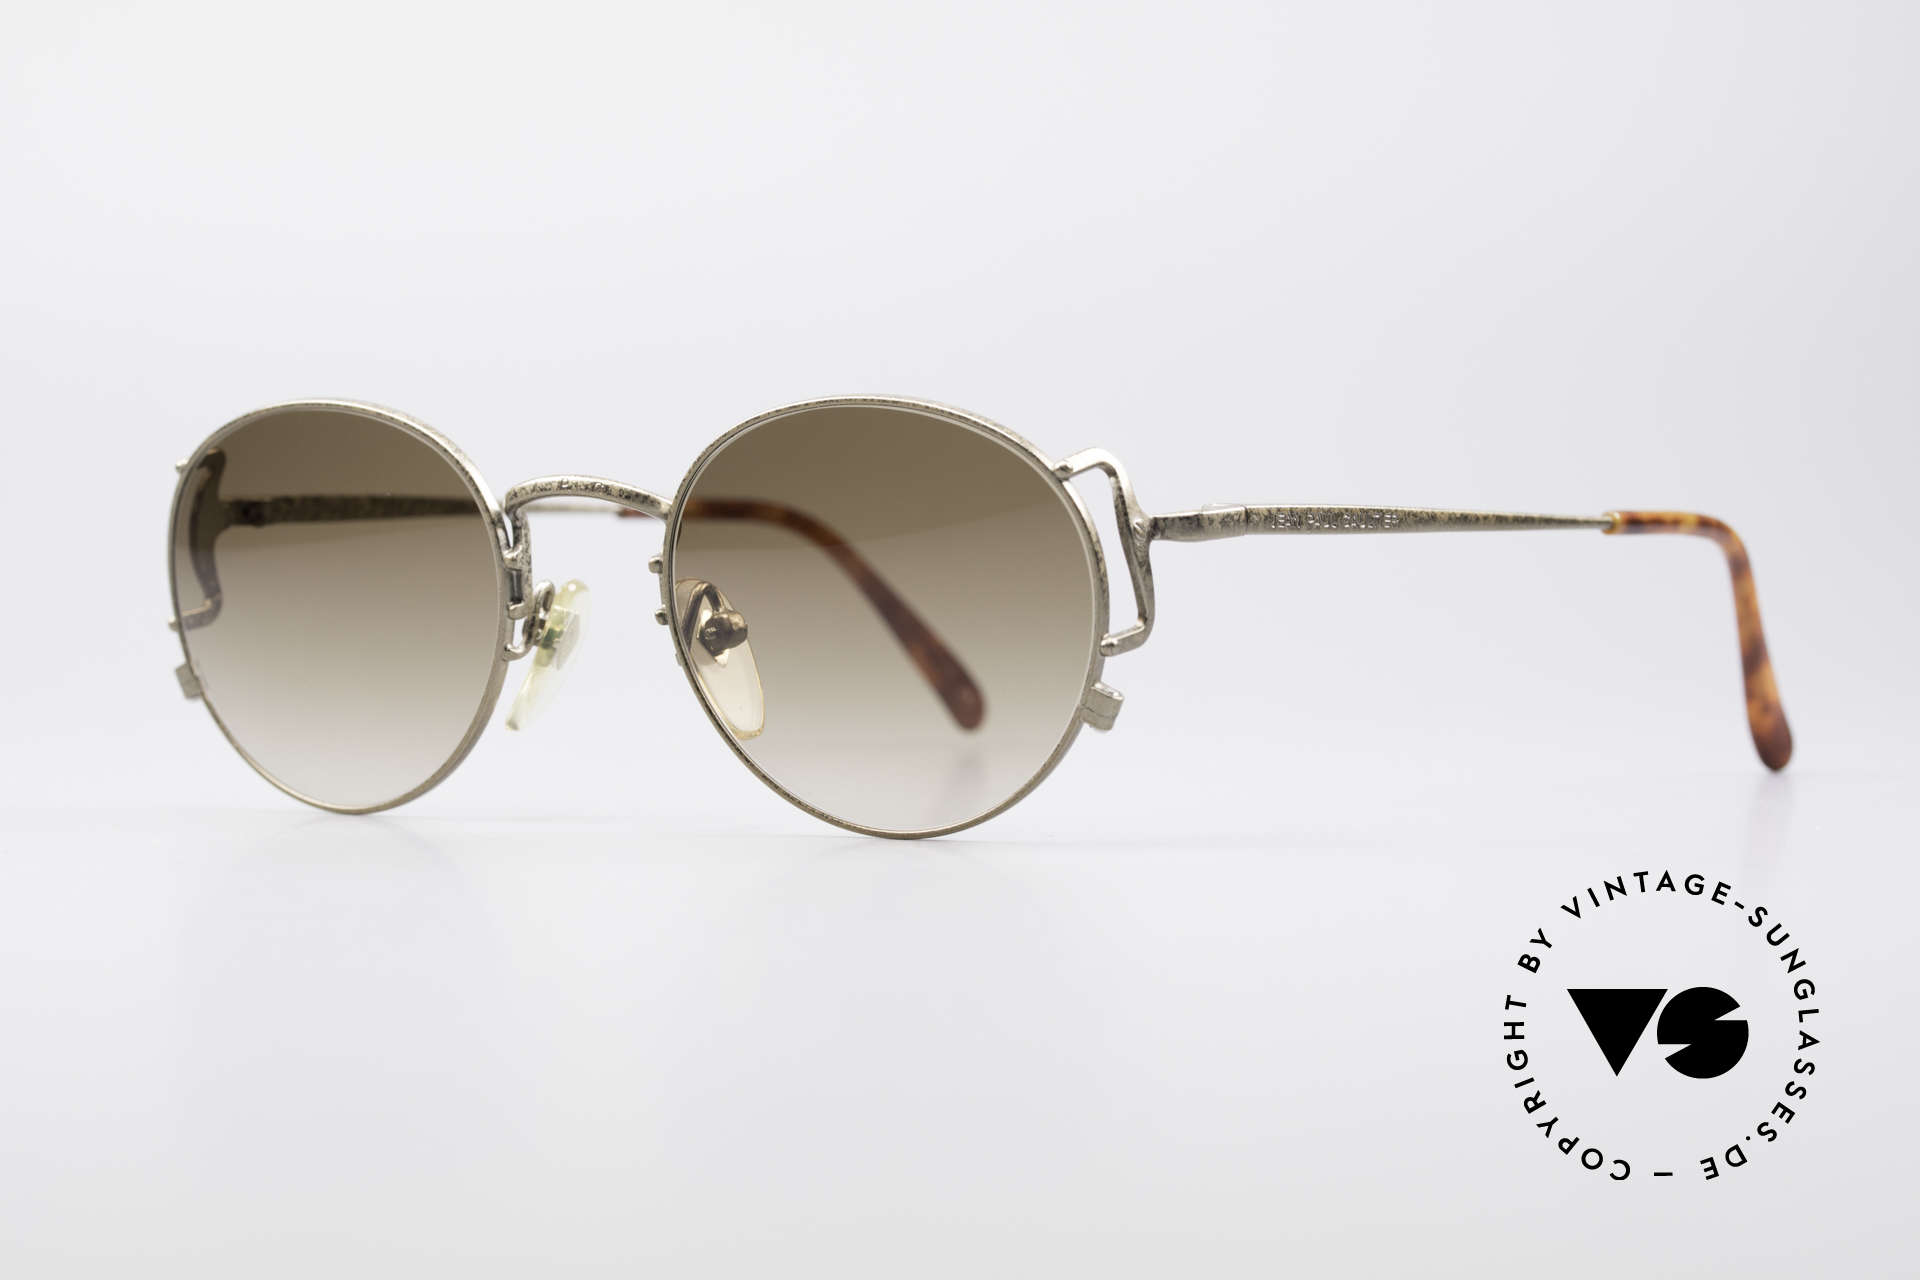 Jean Paul Gaultier 55-3178 90's Vintage No Retro Specs, brown gradient sun lenses (100% UV protection), Made for Men and Women